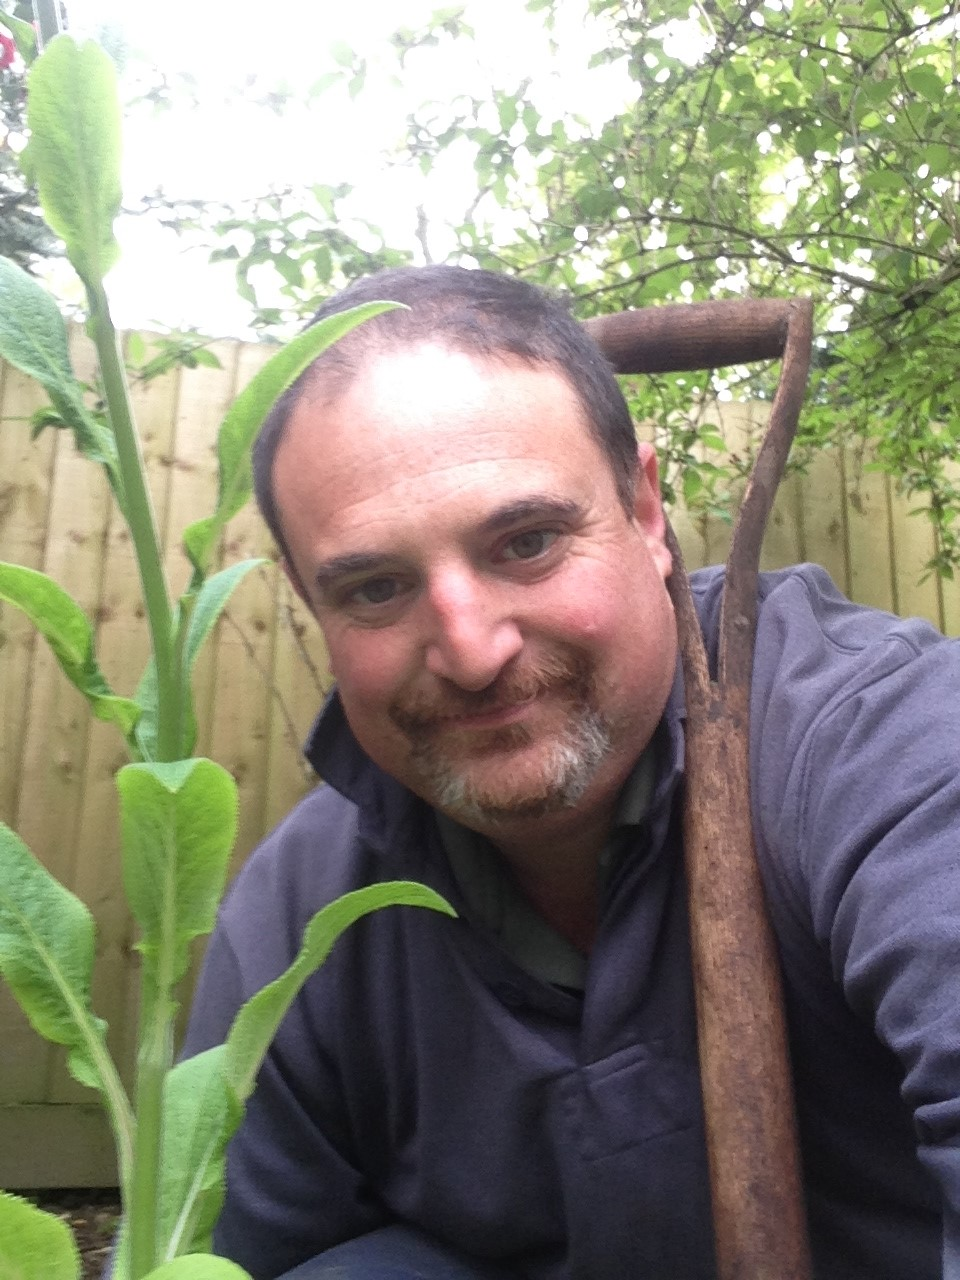 Cornwall Garden Society Evening Lecture: Winter Plants by Thomas Stone